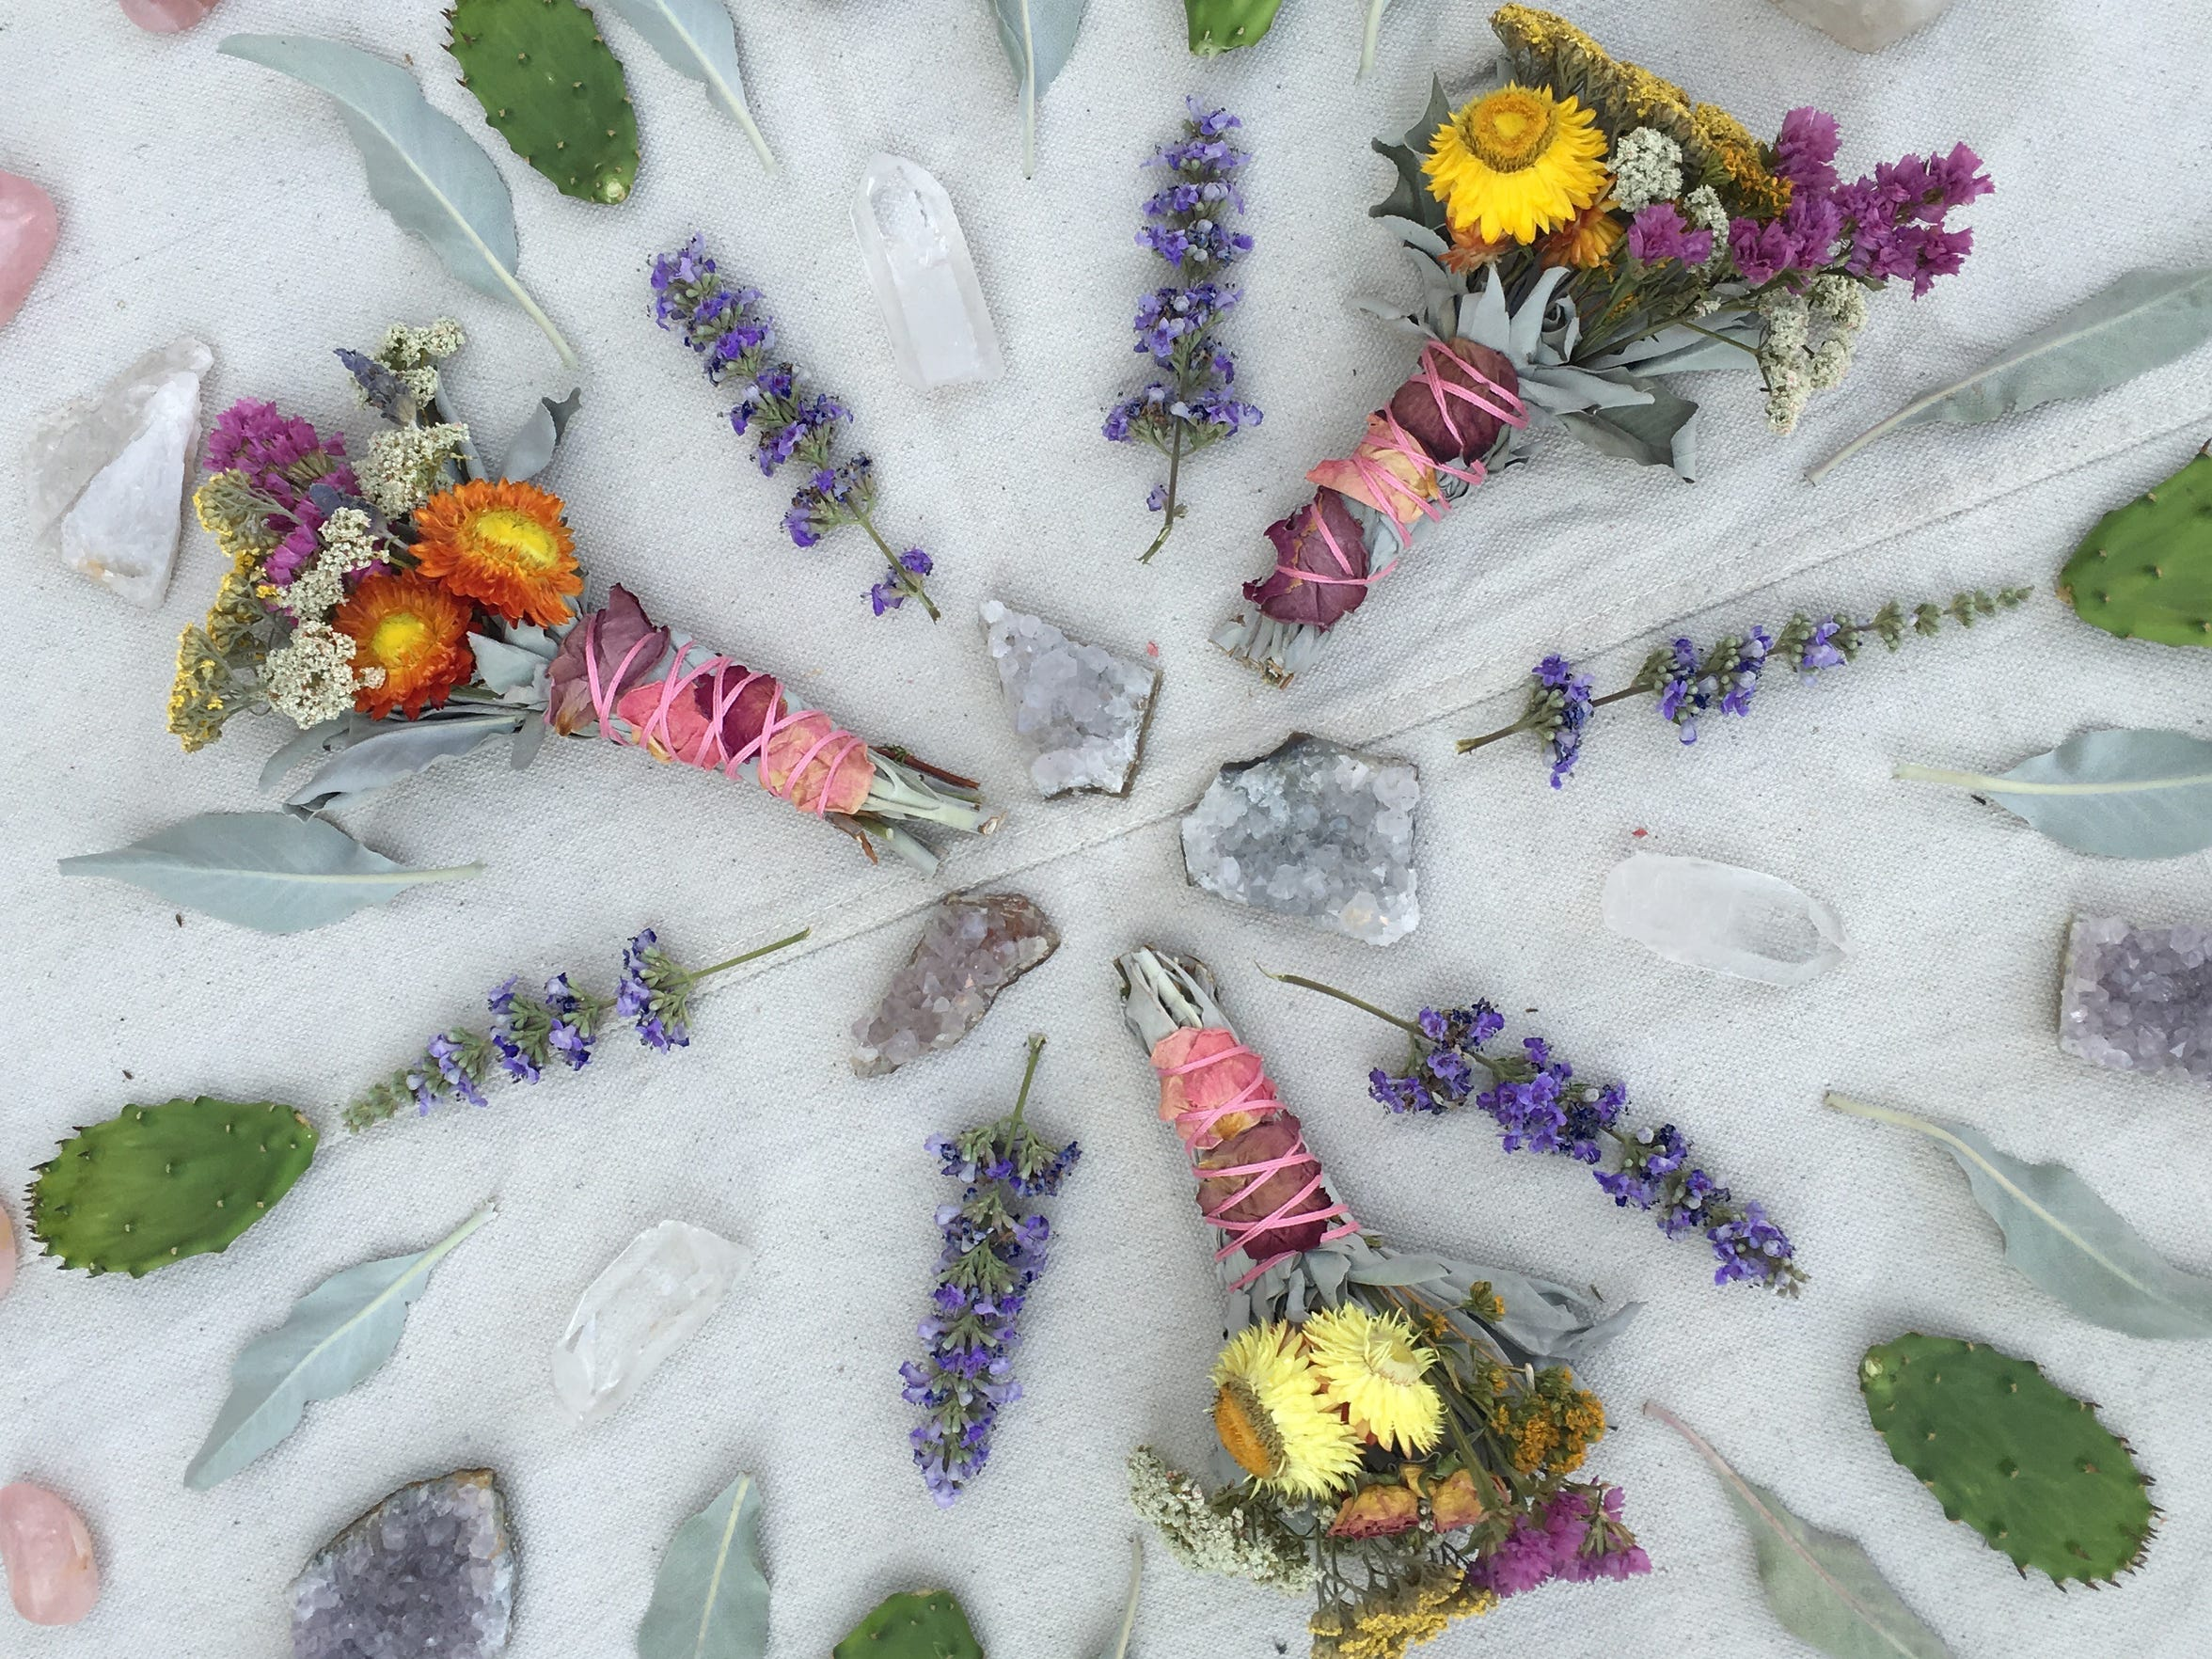 Floral smudge wands from Aquarian Soul Designs.